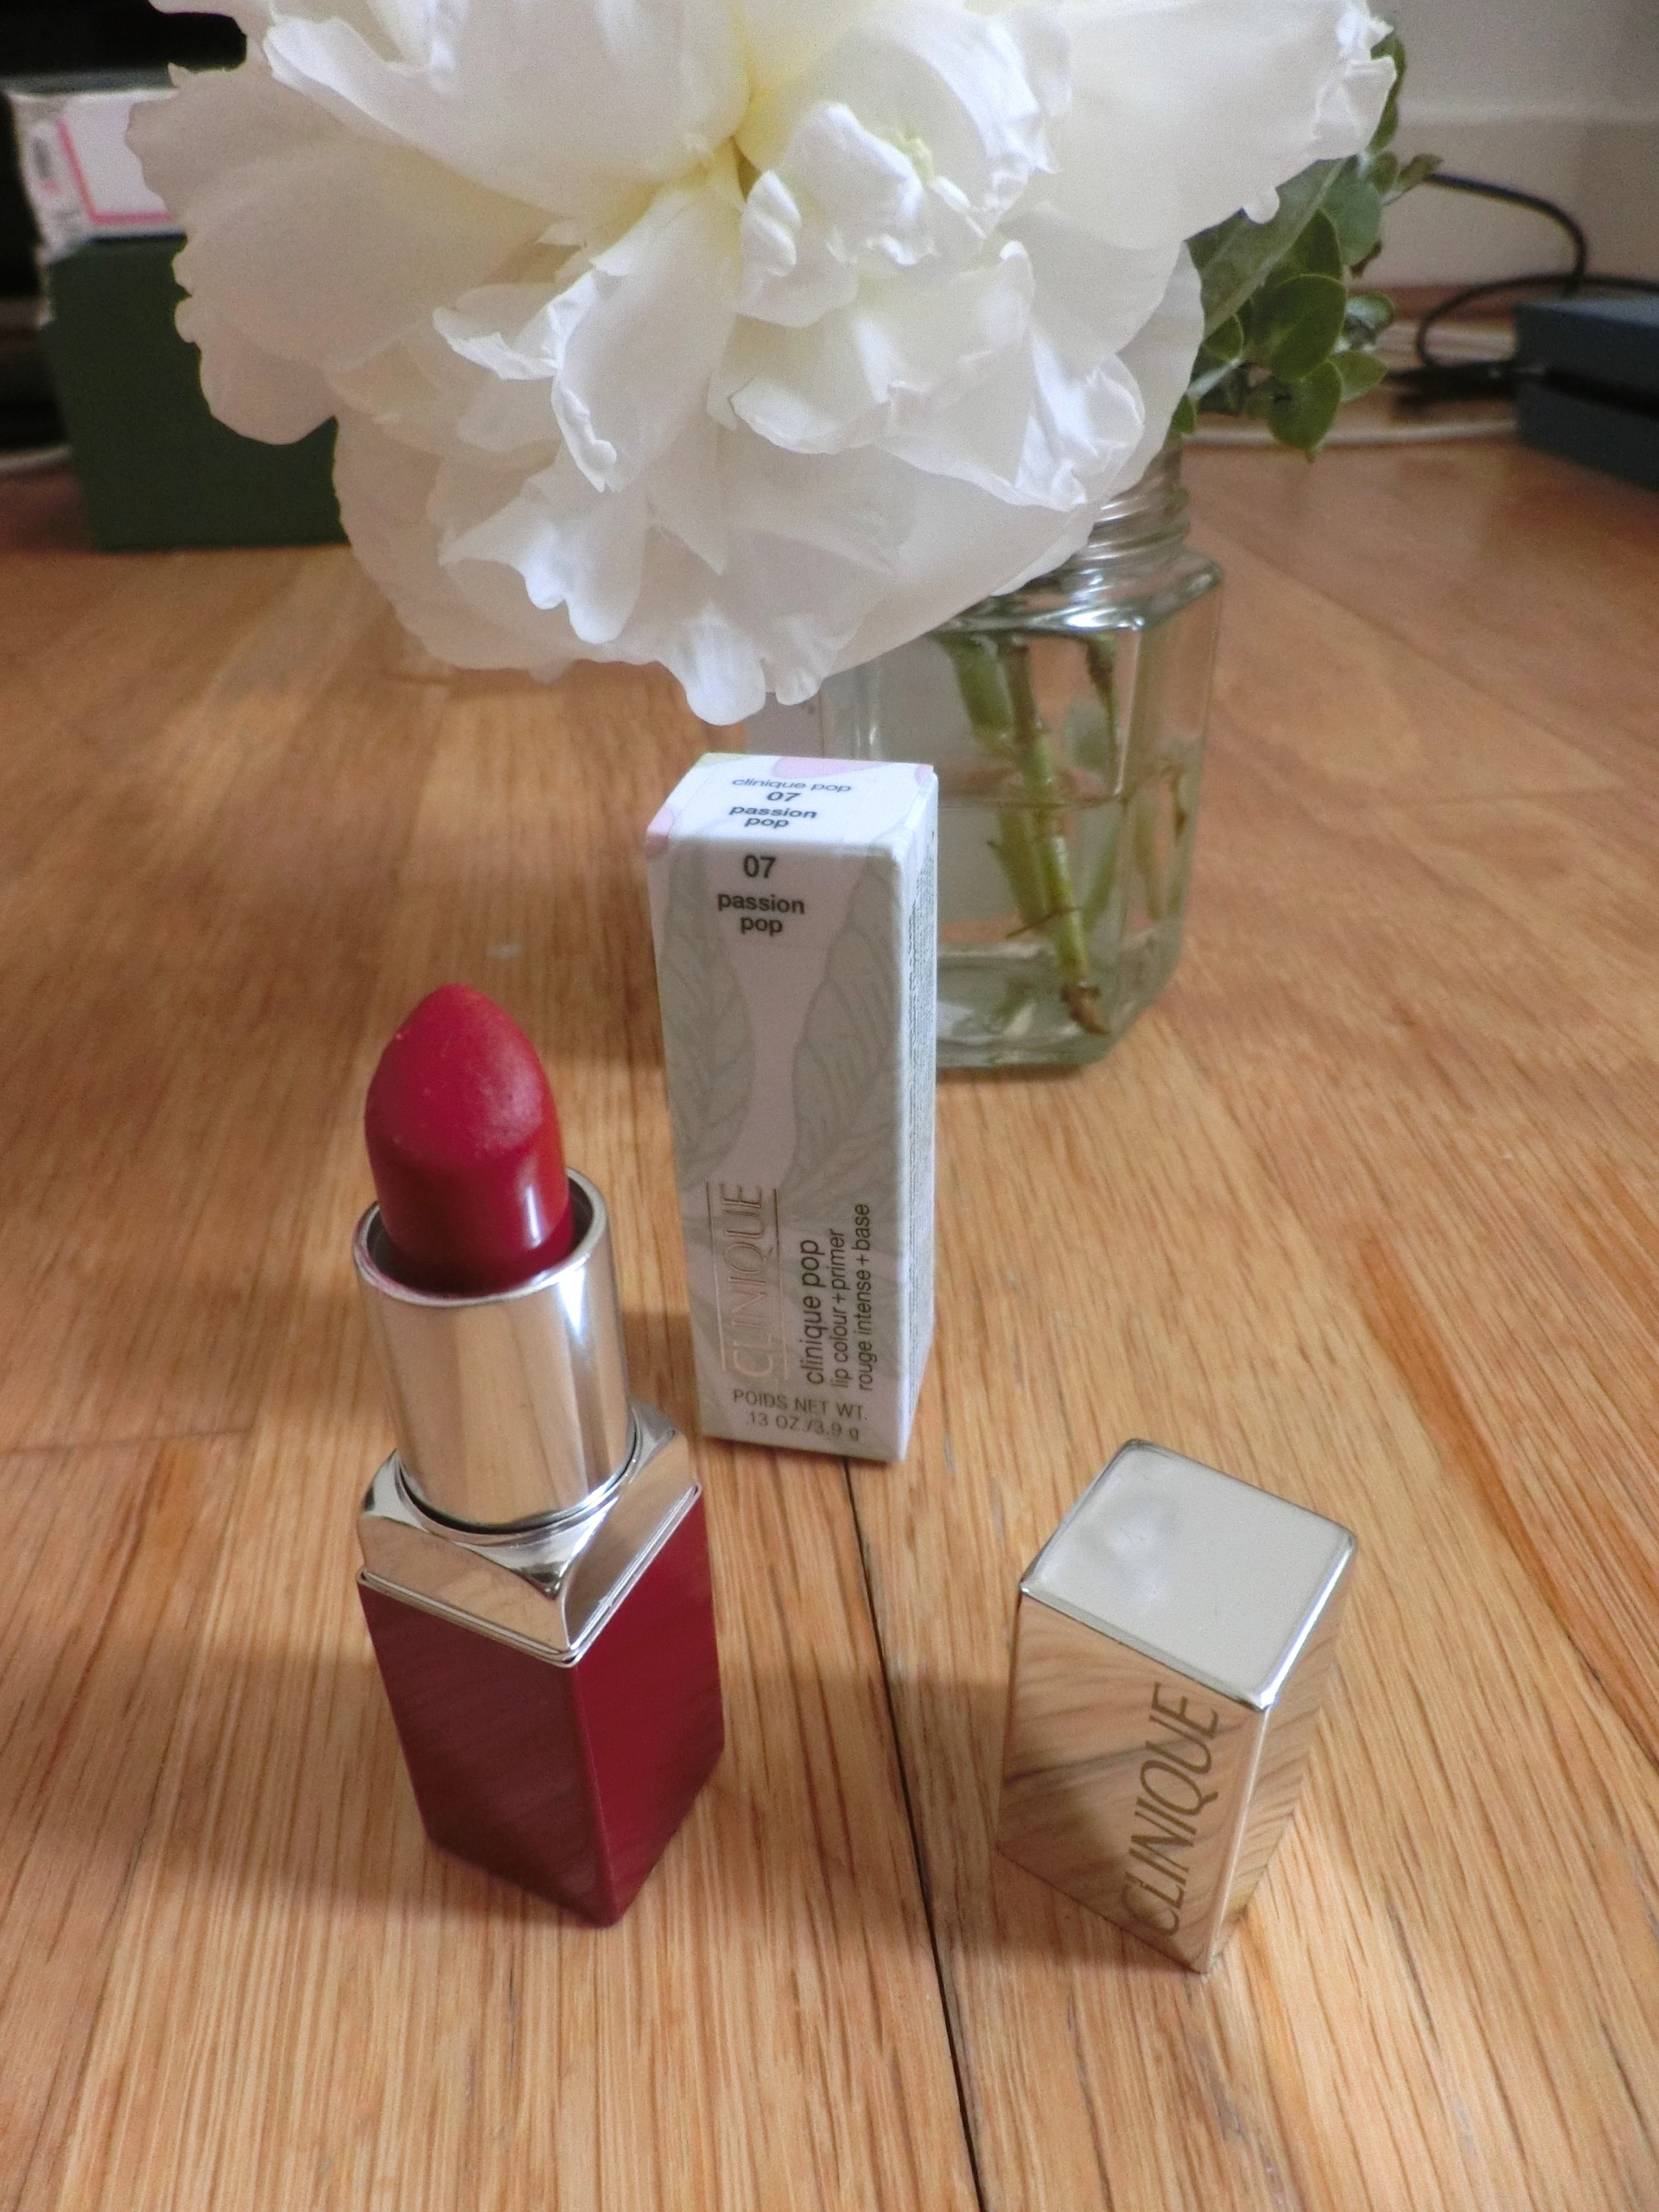 clinique passion pop 07 pop lip color and primer